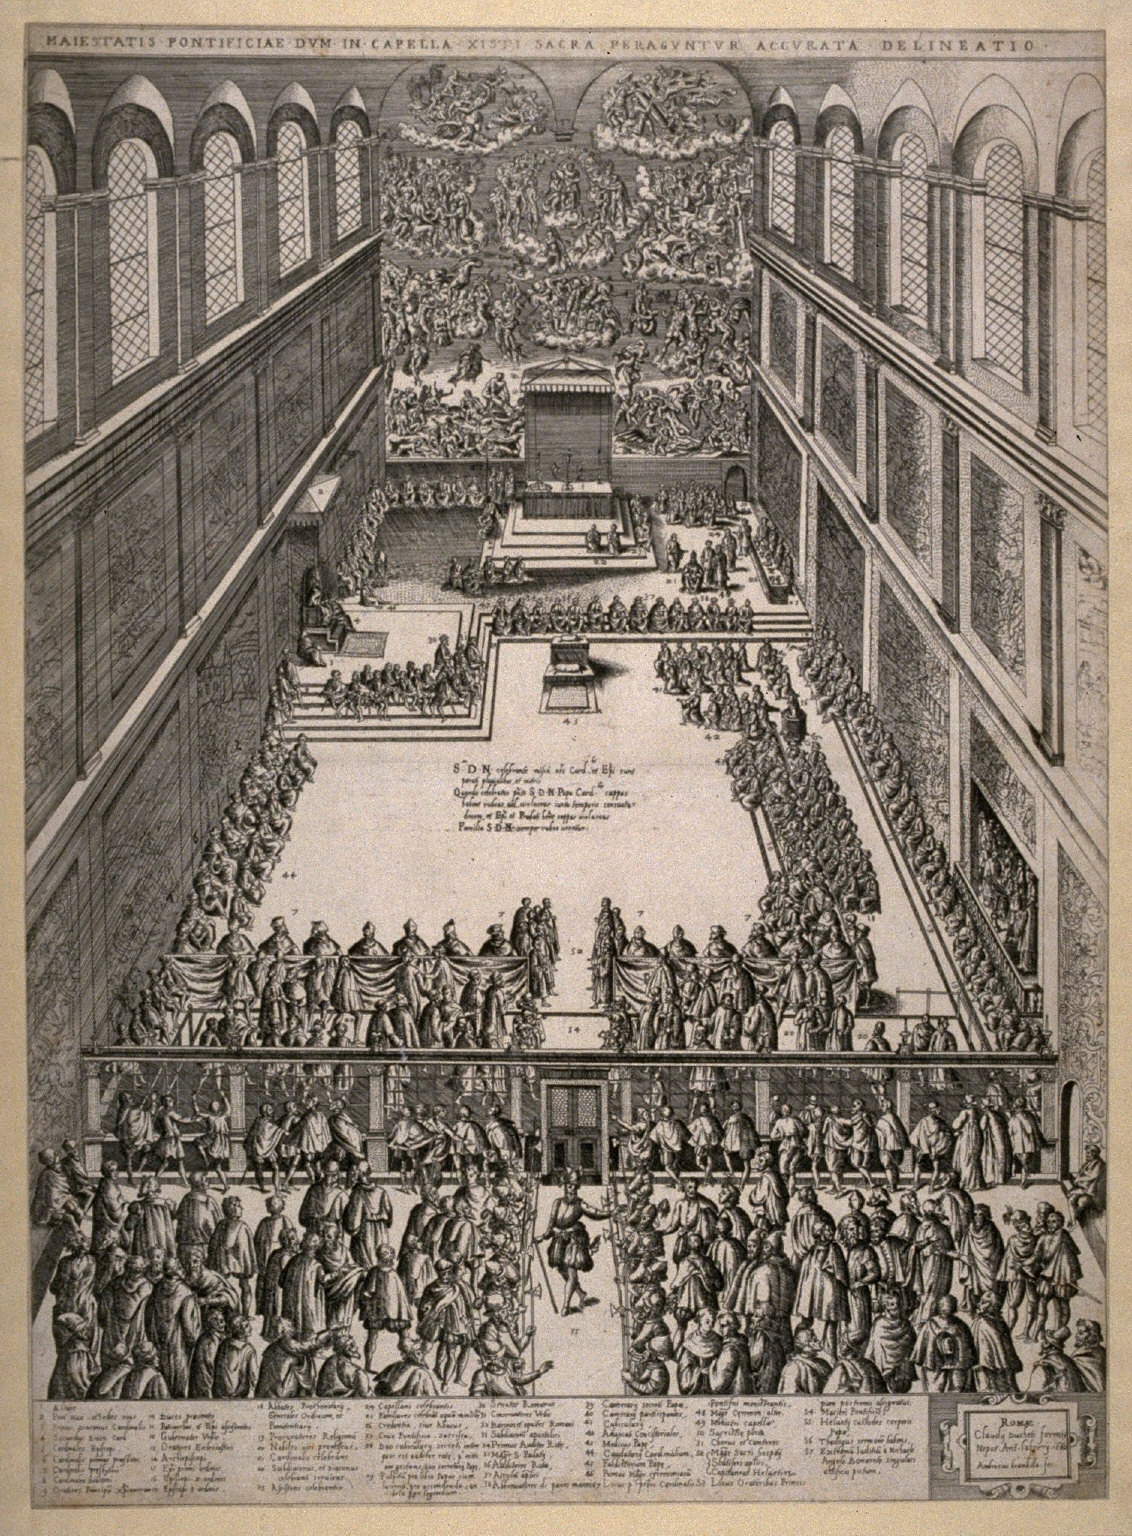 A Consistory Showing the Interior of the Sistine Chapel, after the engraving by Lorenzo Vaccari